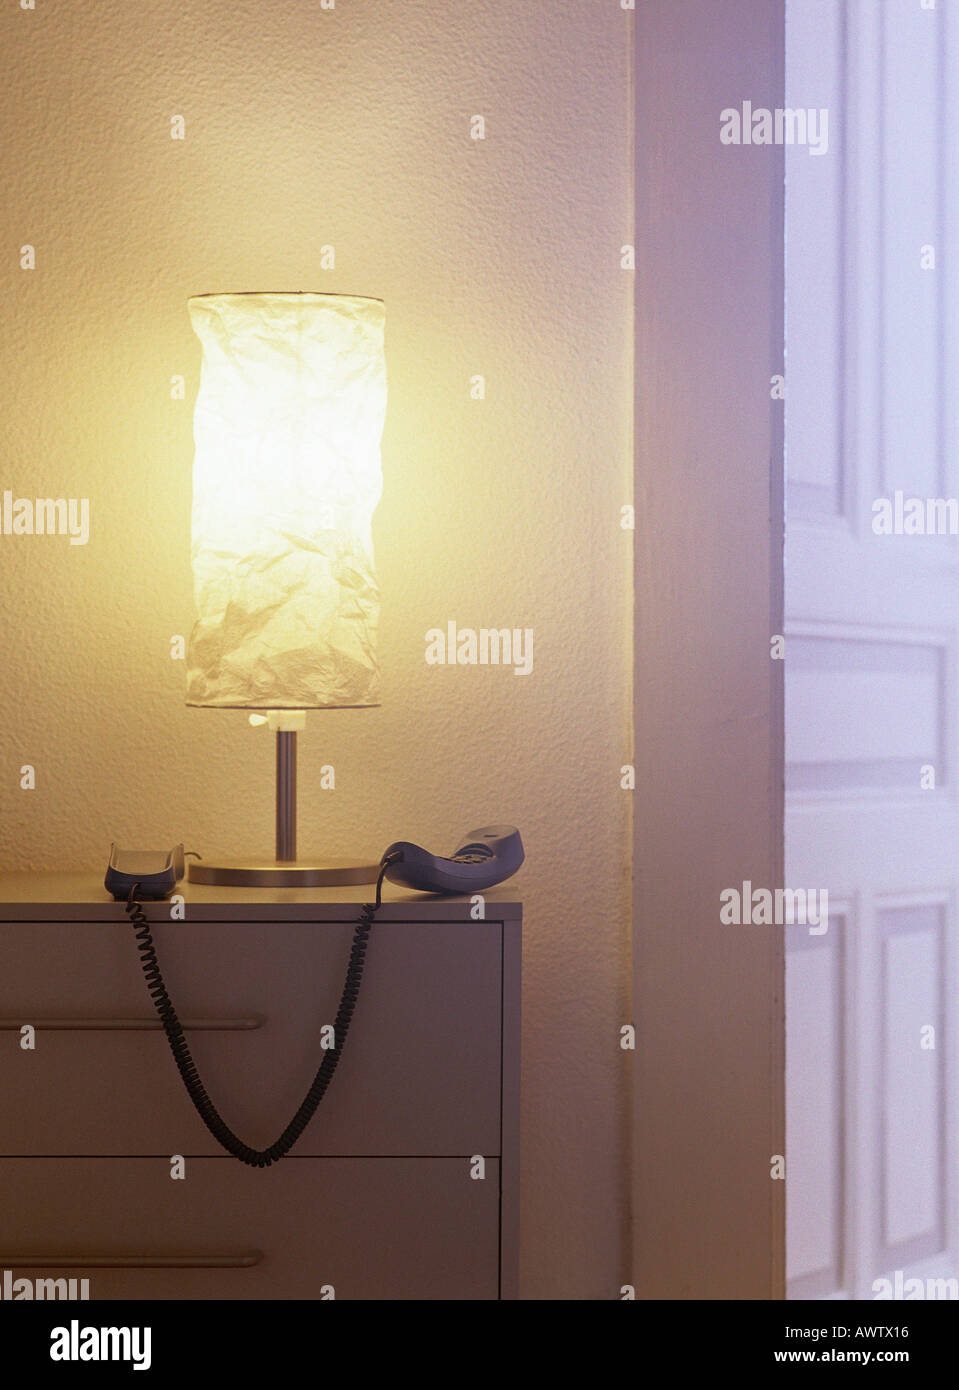 Phone off hook next to lamp on top of chest of drawers - Stock Image